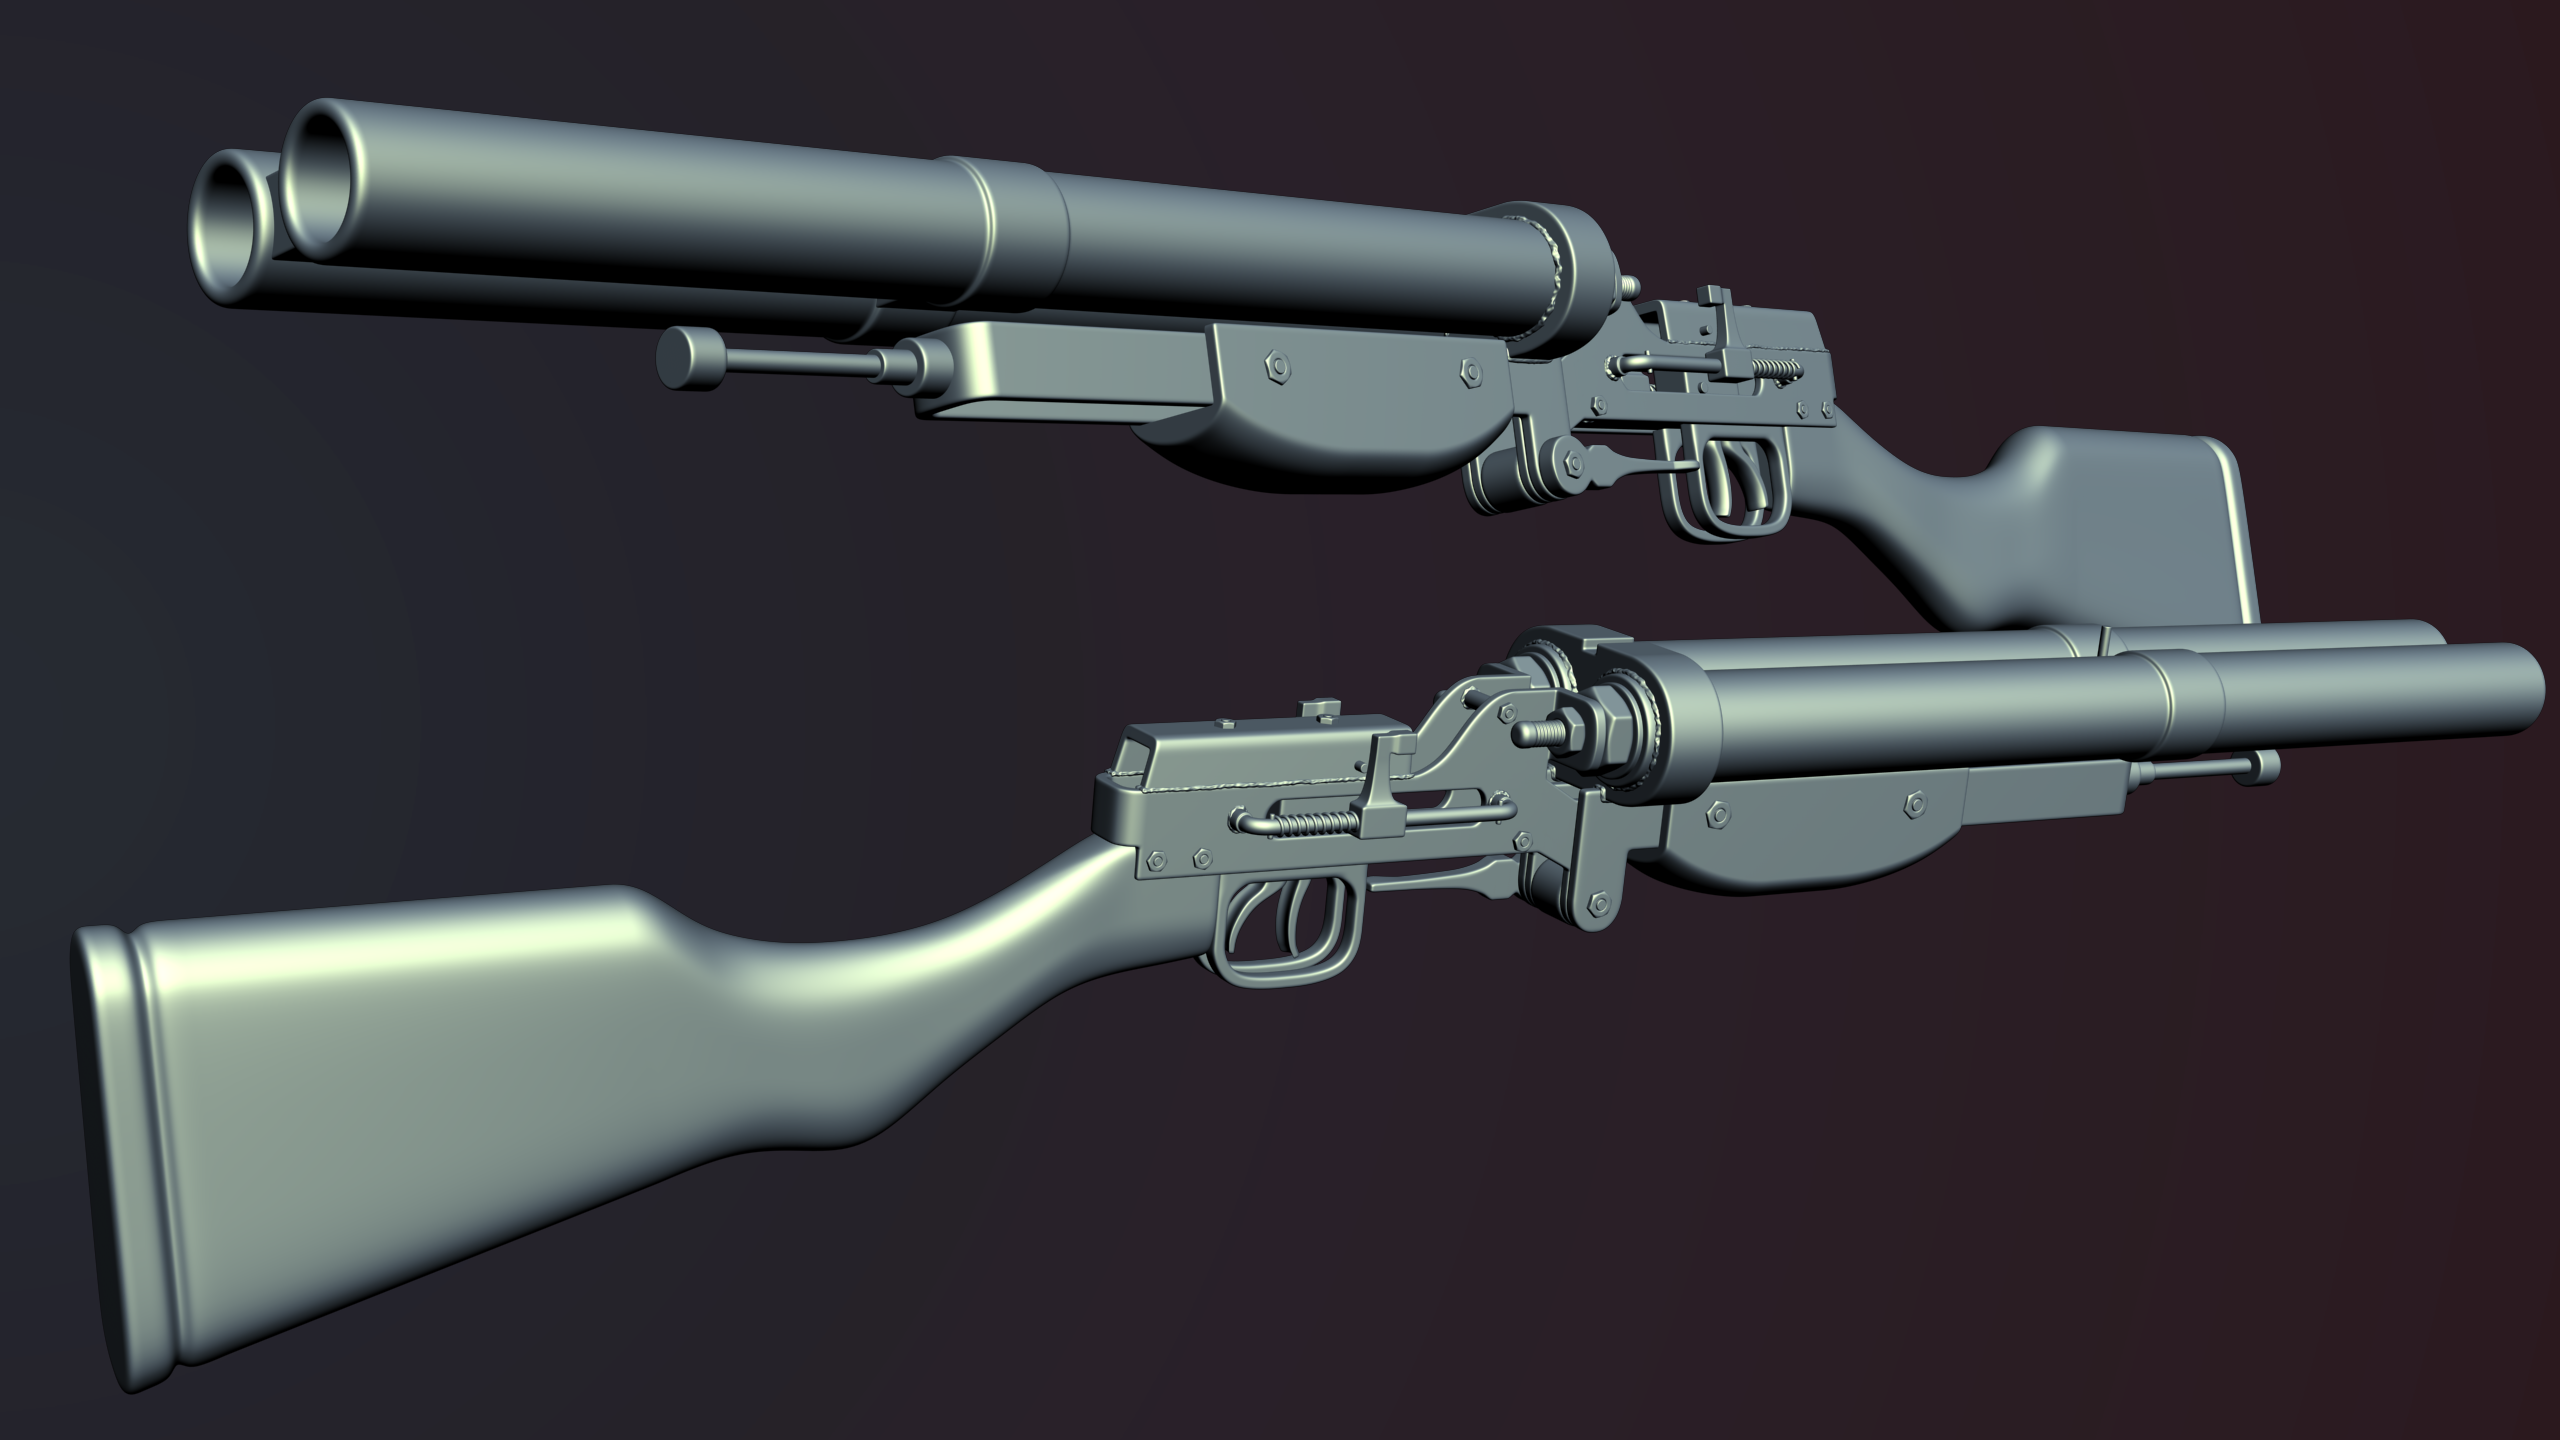 Homemade Double Barrel Shotgun highpoly finished at Fallout New